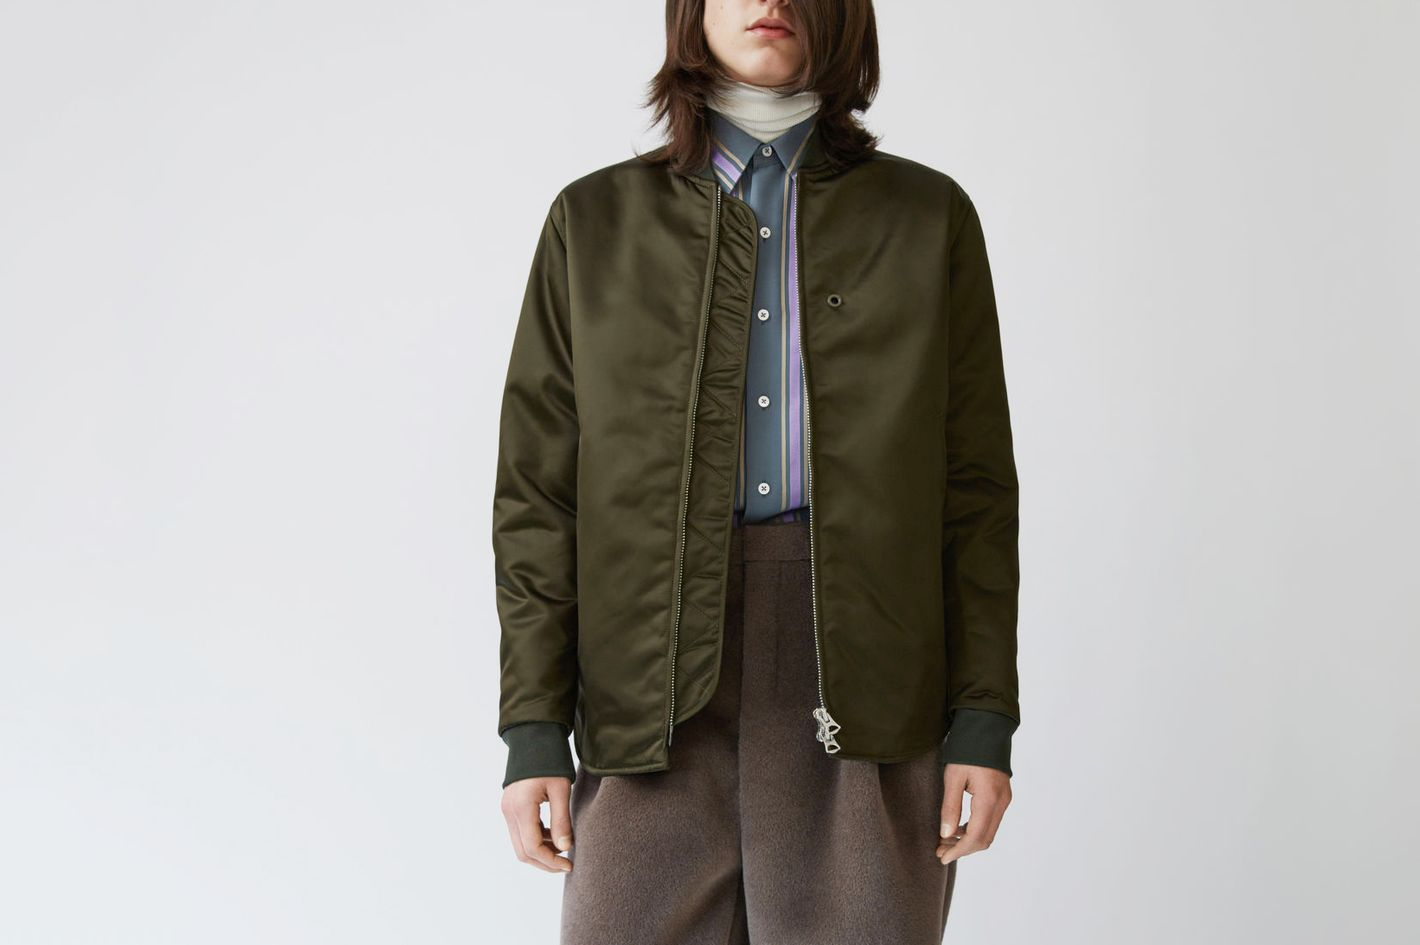 Mylon Green Bomber Jacket